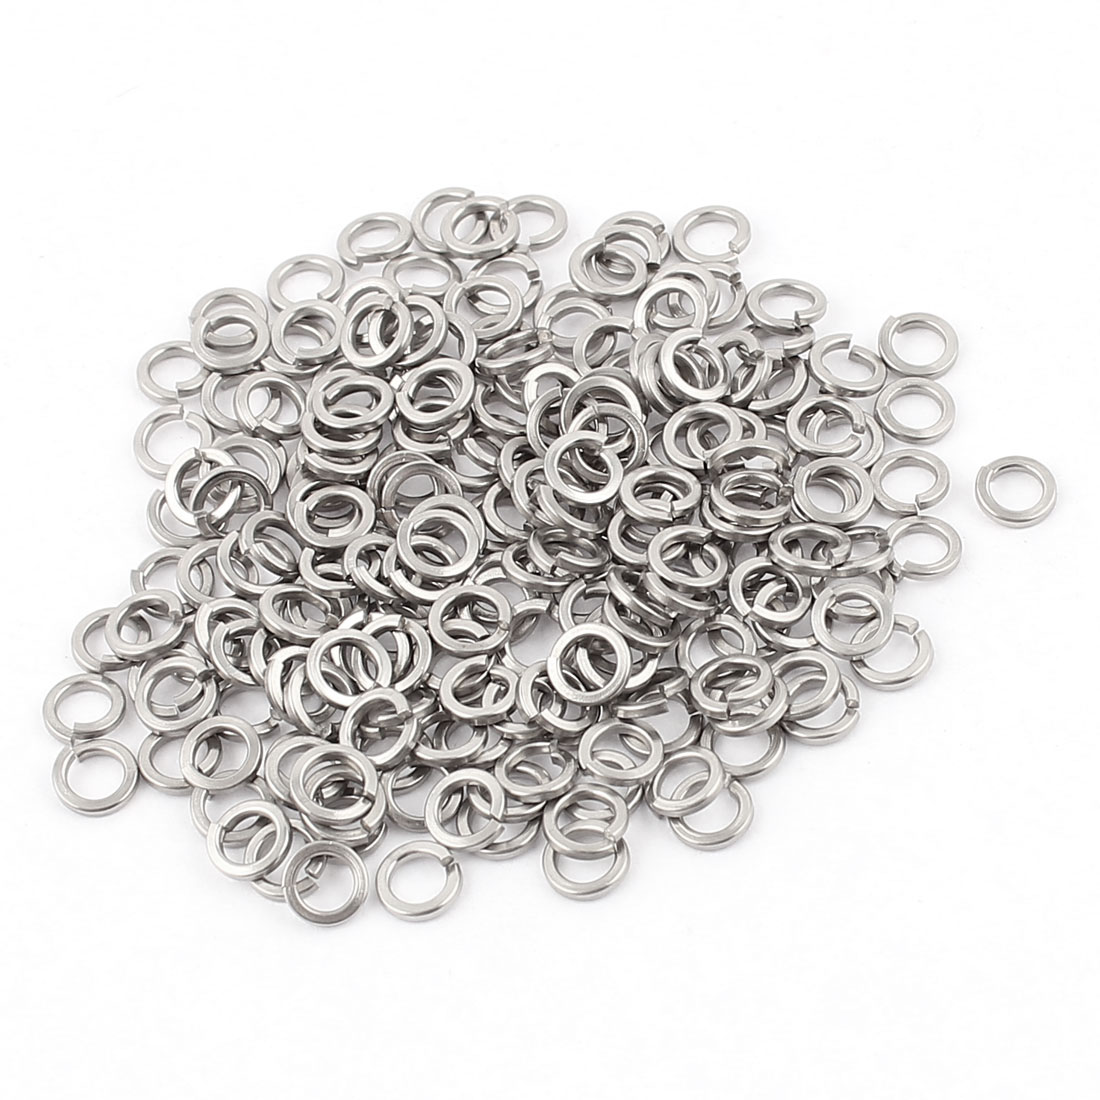 200pcs 304 Stainless Steel M3 Split Lock Spring Washers Pad Gasket